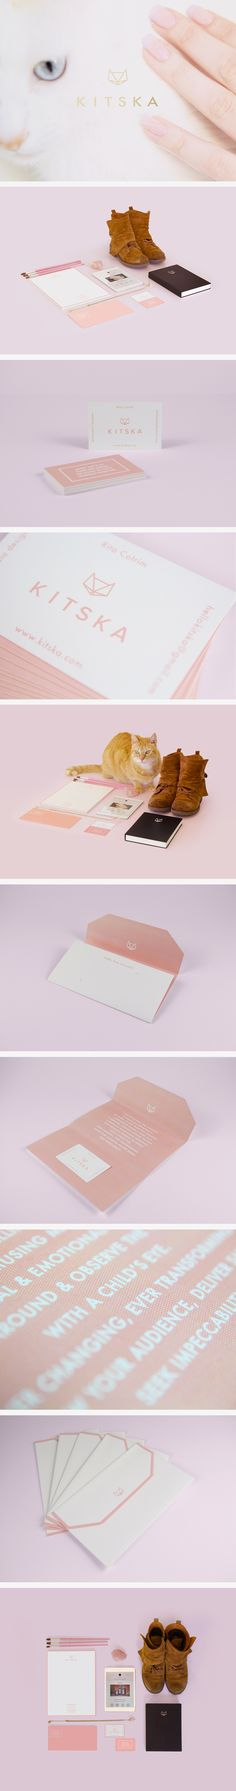 Kitska Branding & Identity by Rita Fox, via Behance. Business card and #stationery suite design inspiration. I love this product photography with shoes and a cat!